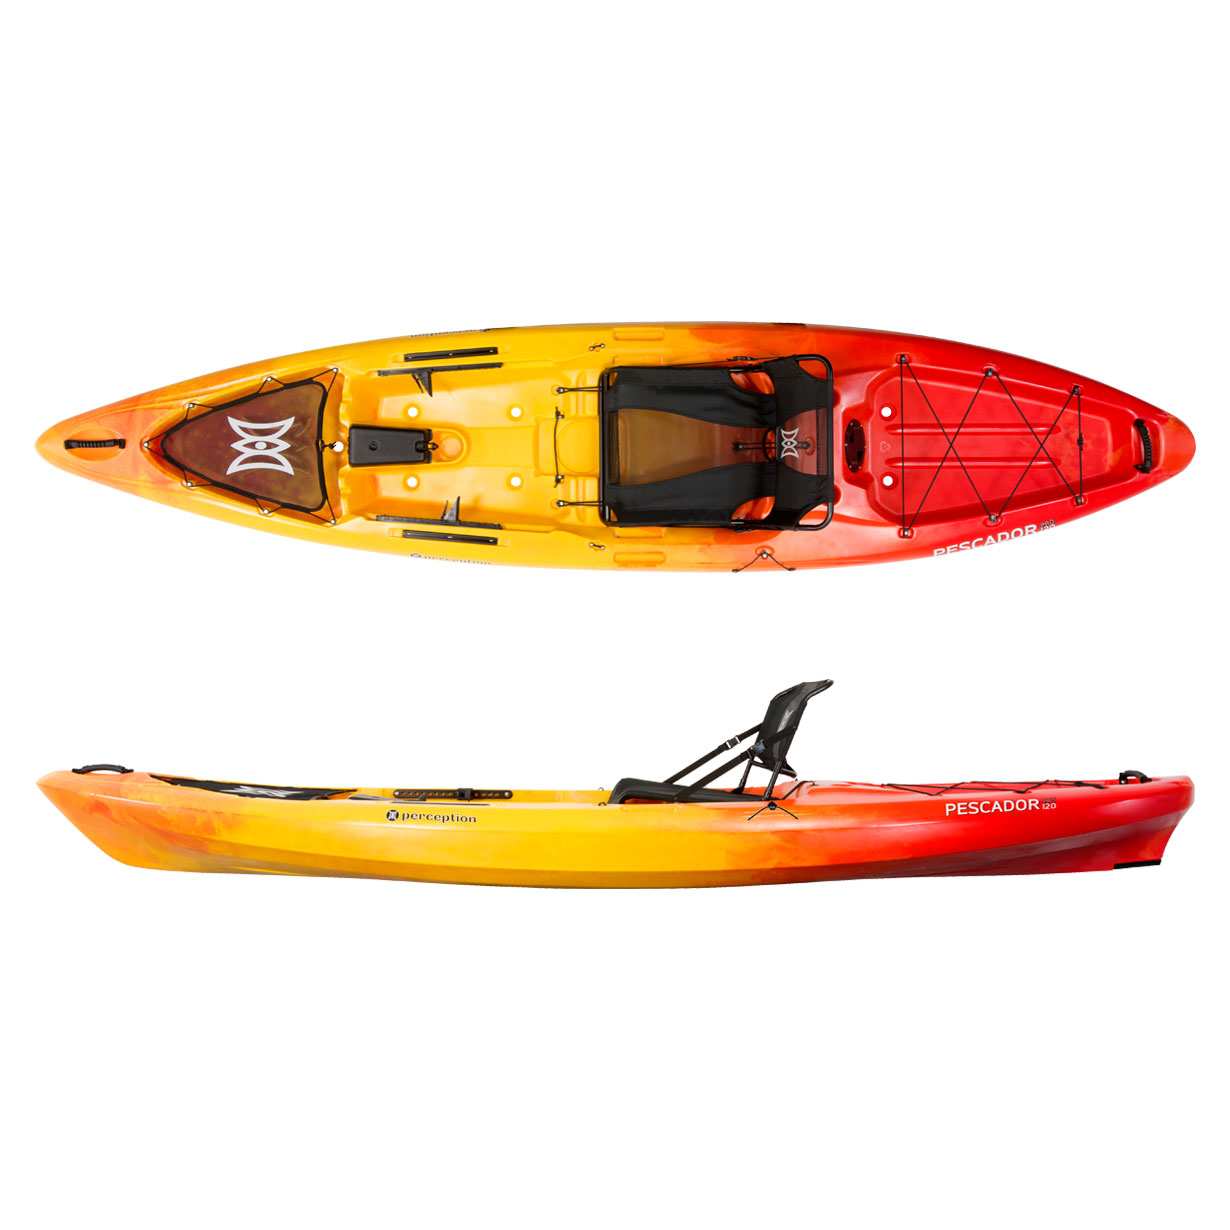 Perception pescador pro 12 sit on top fishing kayak for Sit on vs sit in kayak for fishing